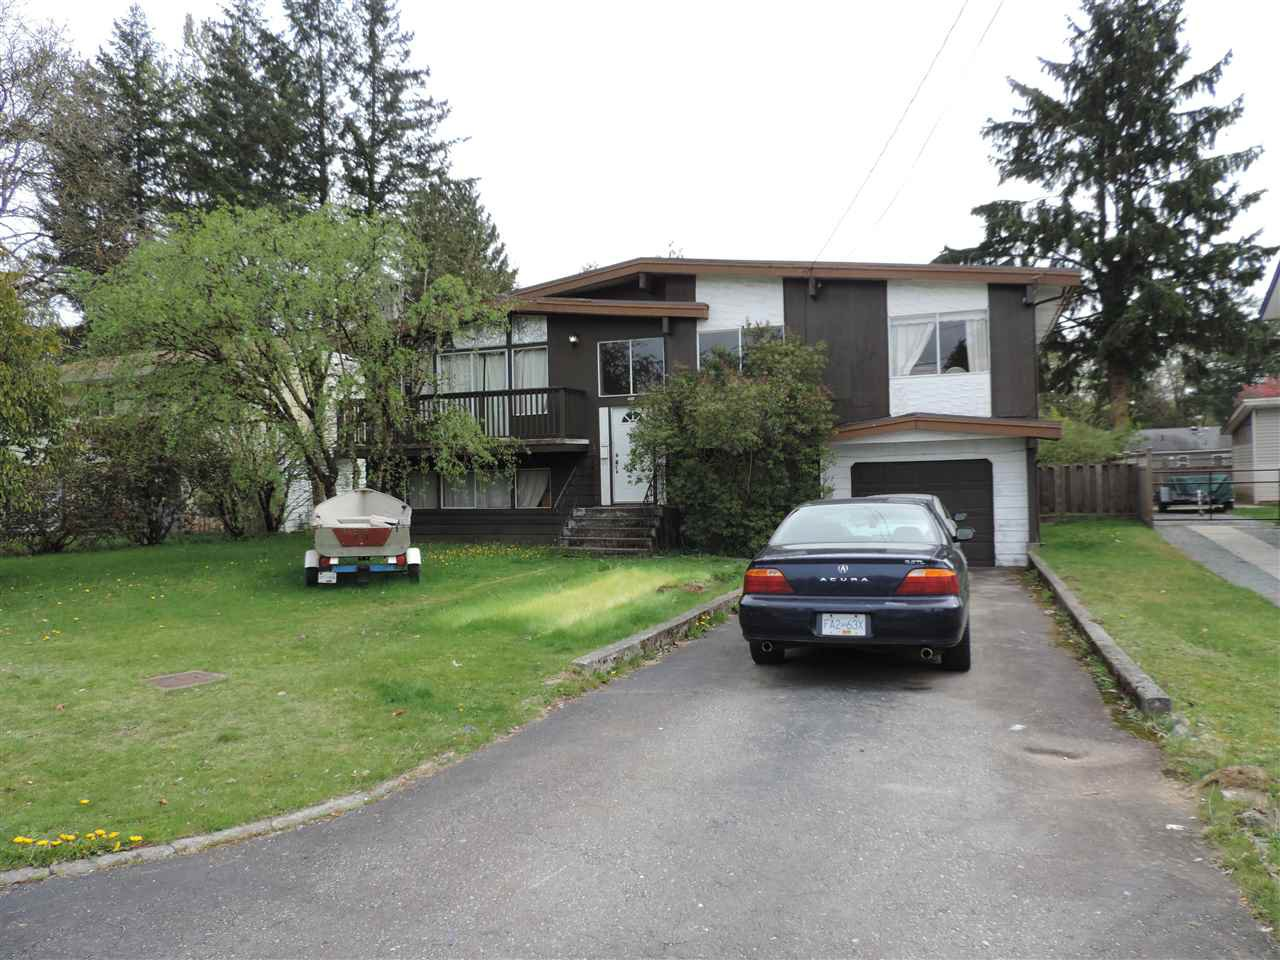 Photo 2: Photos: 7546 MARTIN Place in Mission: Mission BC House for sale : MLS®# R2360102